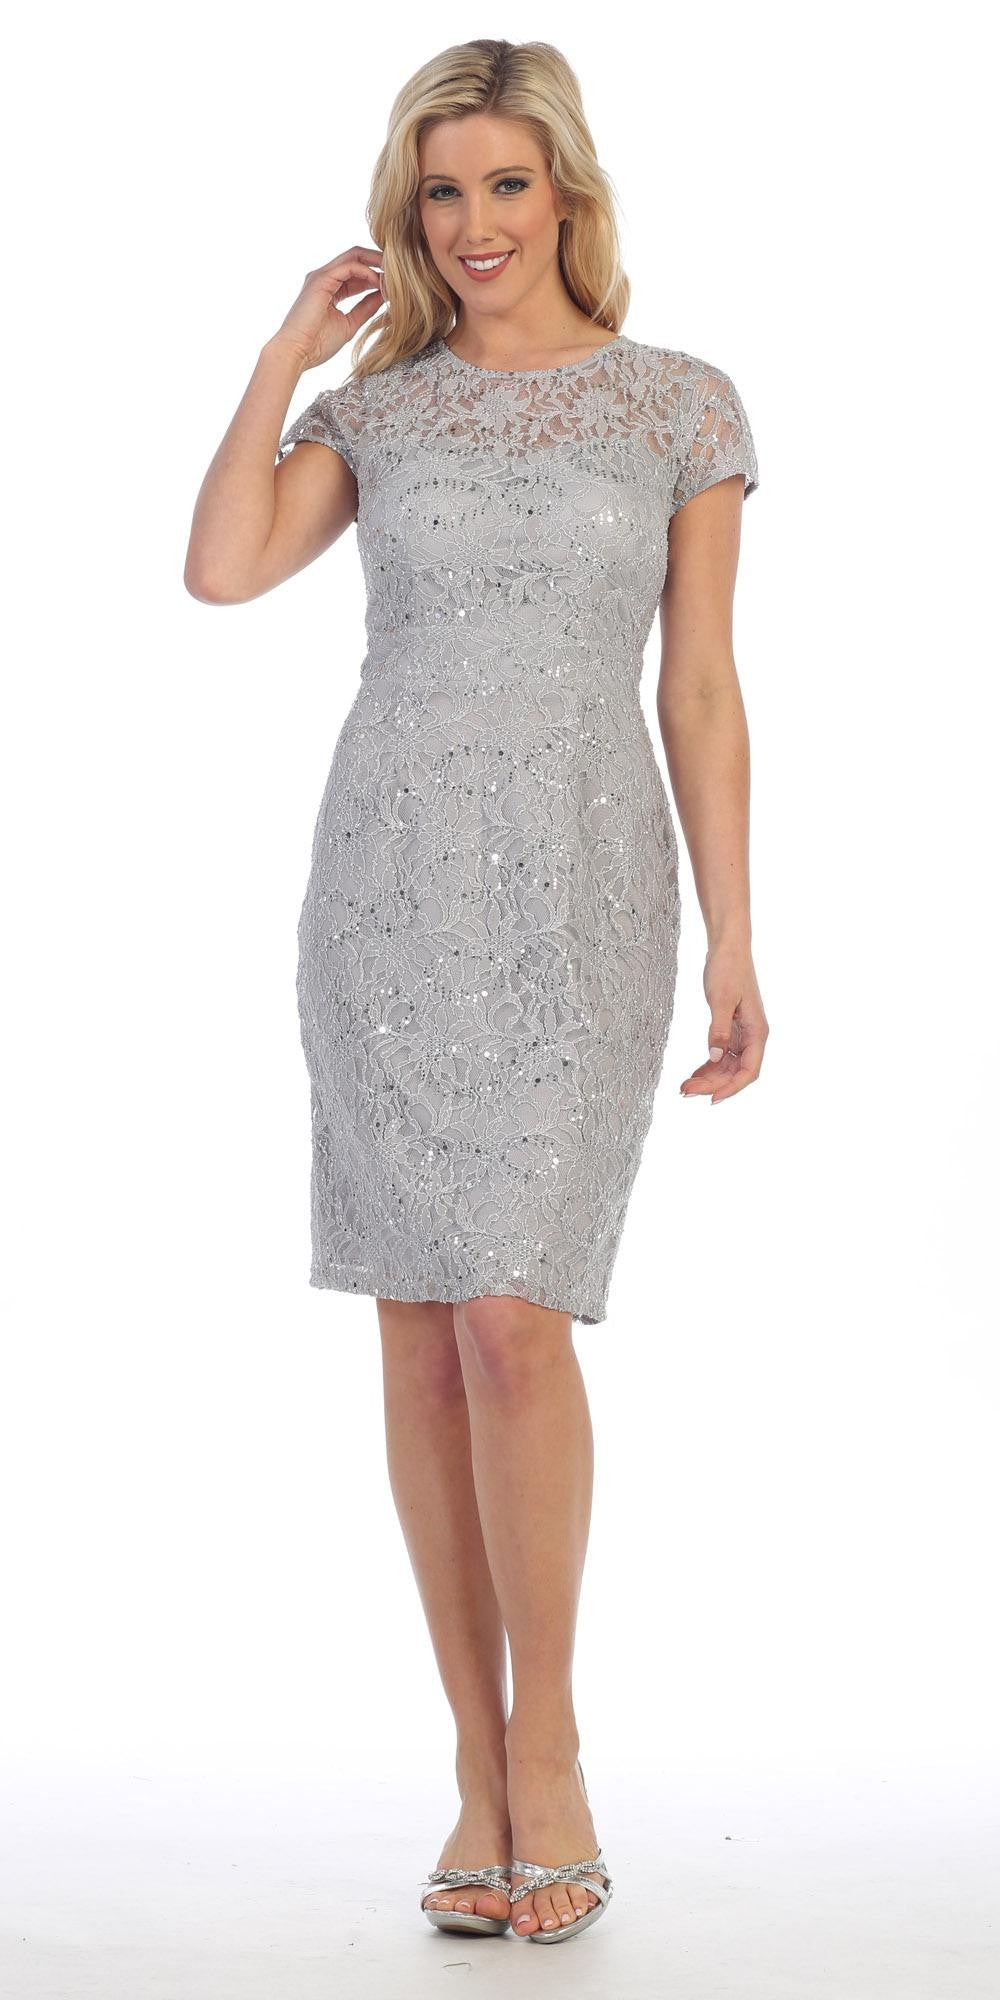 Lace Short Sleeves Knee-Length Cocktail Dress with Sequins Silver